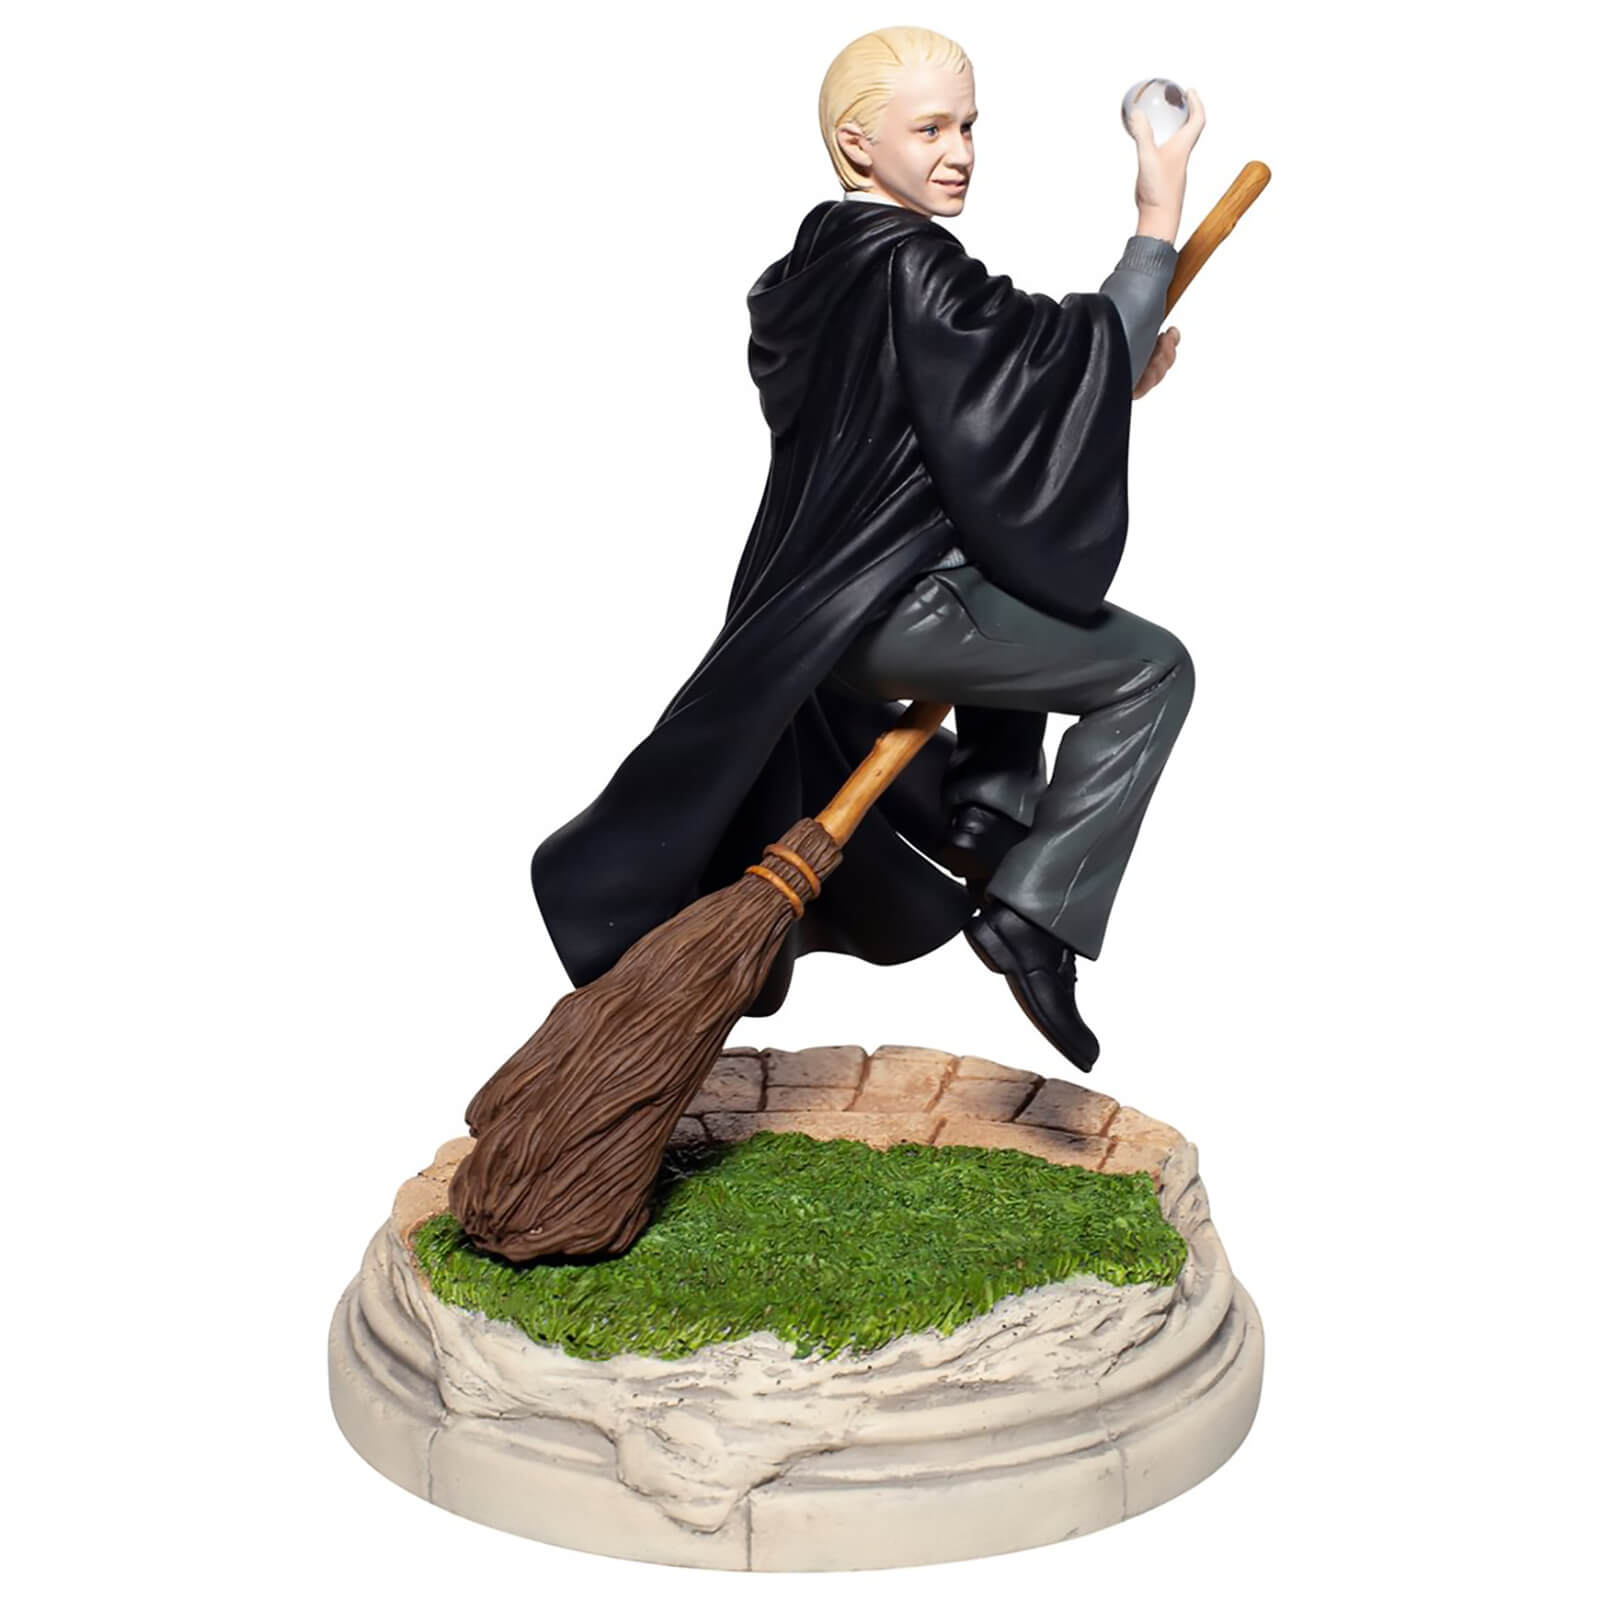 Image of The Wizarding World of Harry Potter Draco Malfoy™ Figurine 21cm